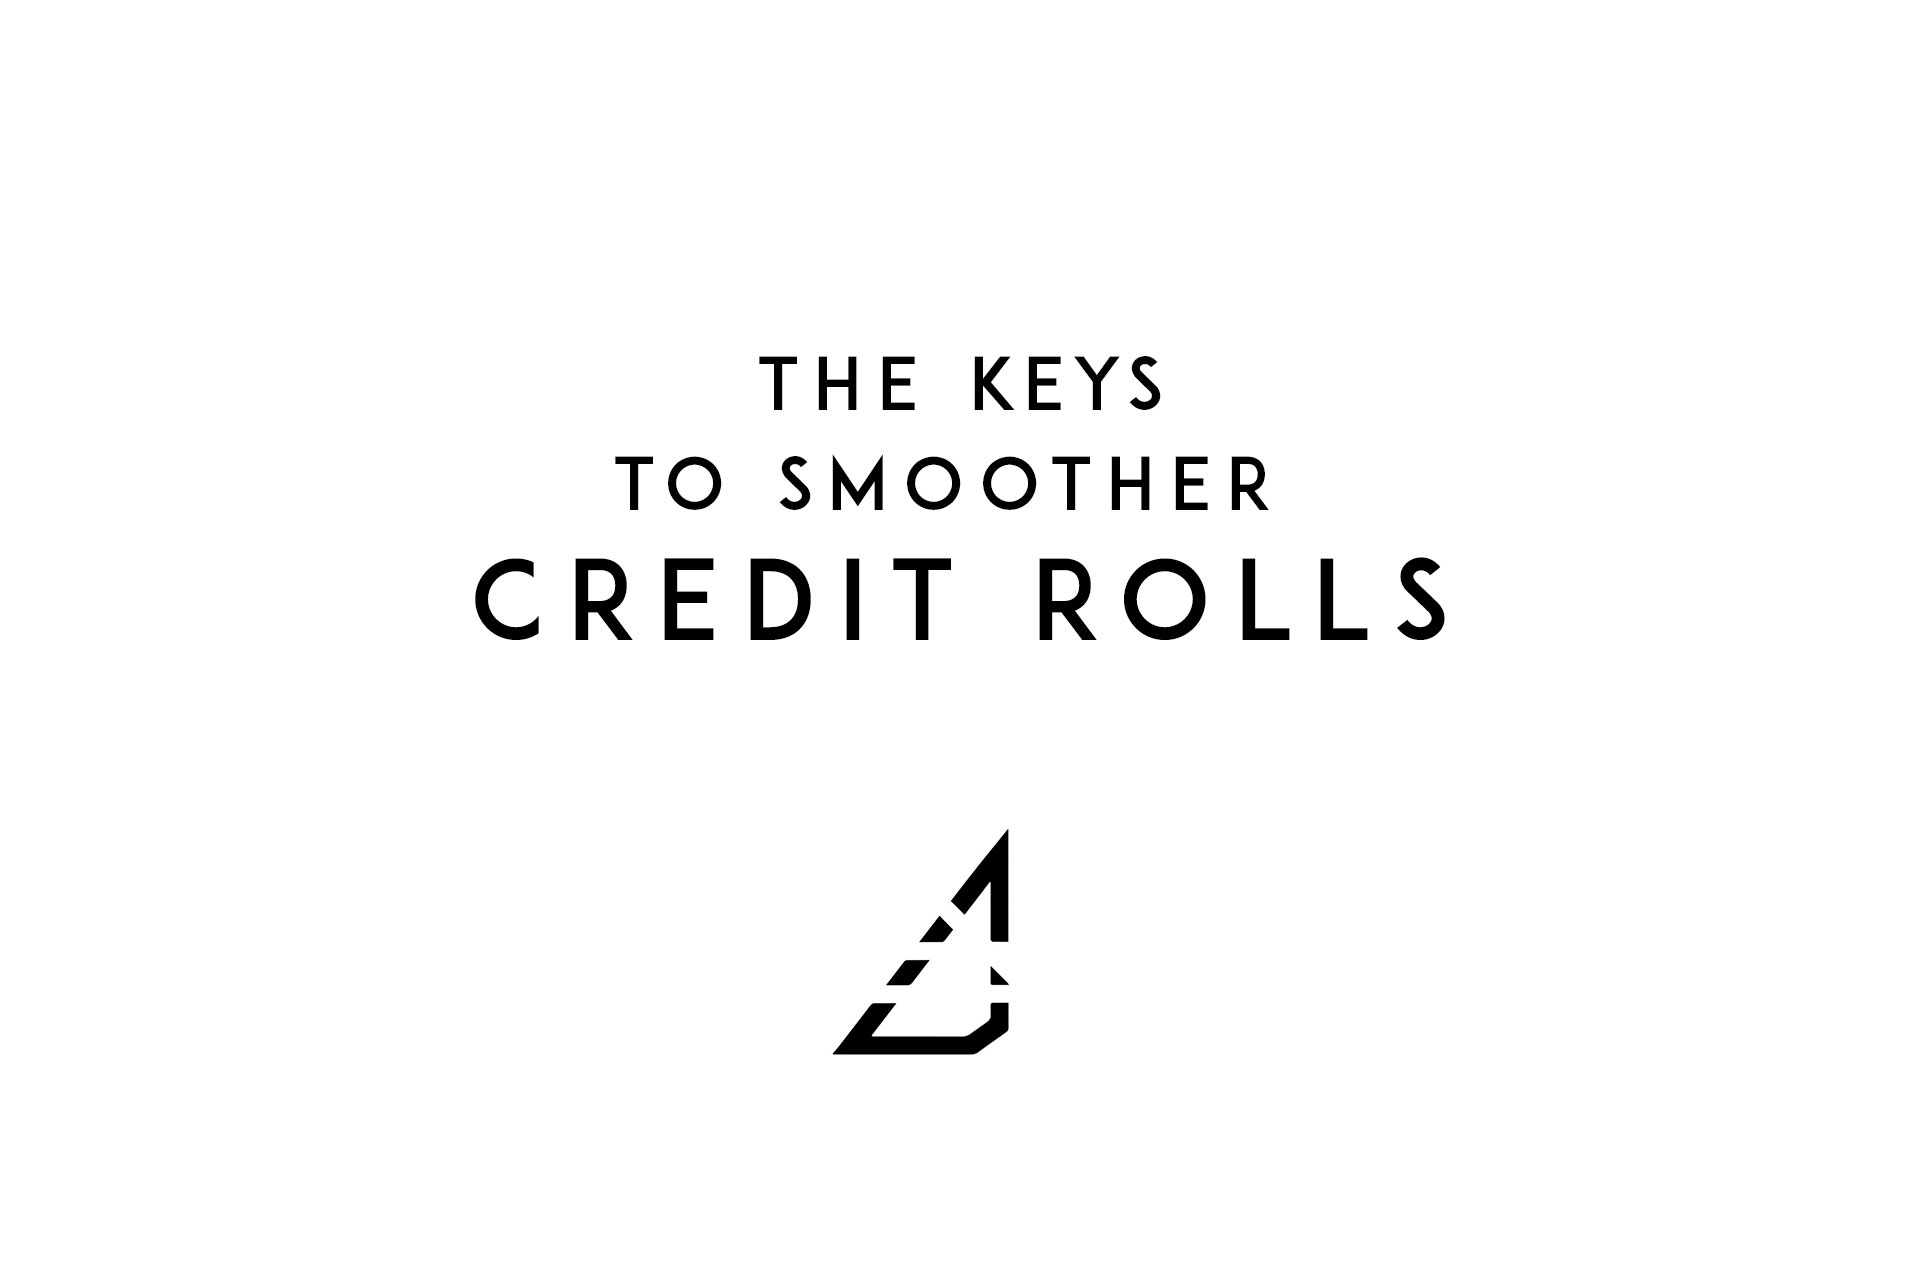 The Keys to Smoother Credit Rolls (/w template)